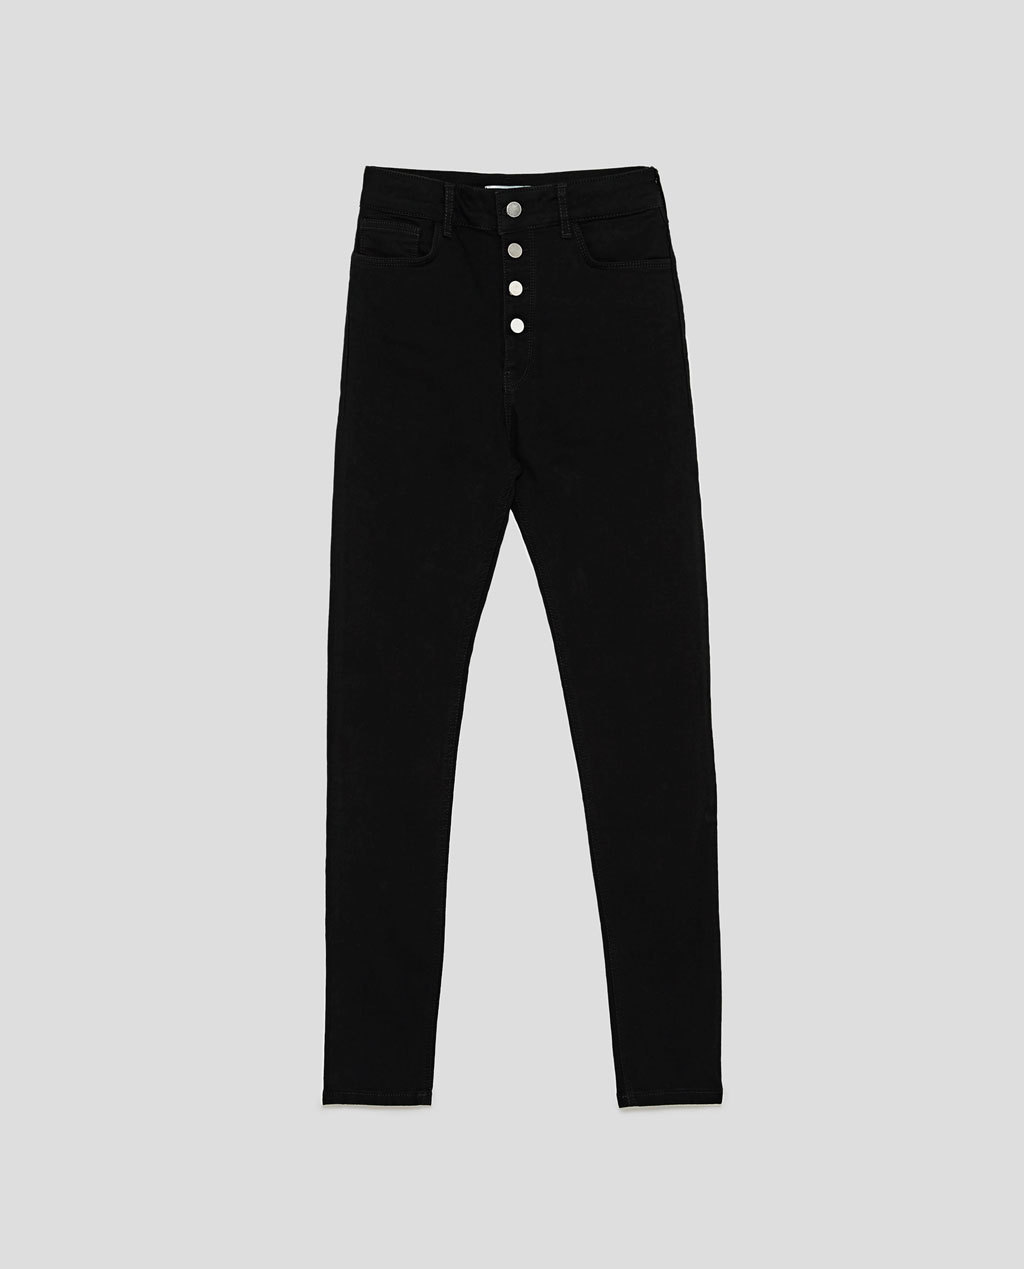 ZARA THE HIGH WAIST JEANS WITH BUTTON FLY 7513/249